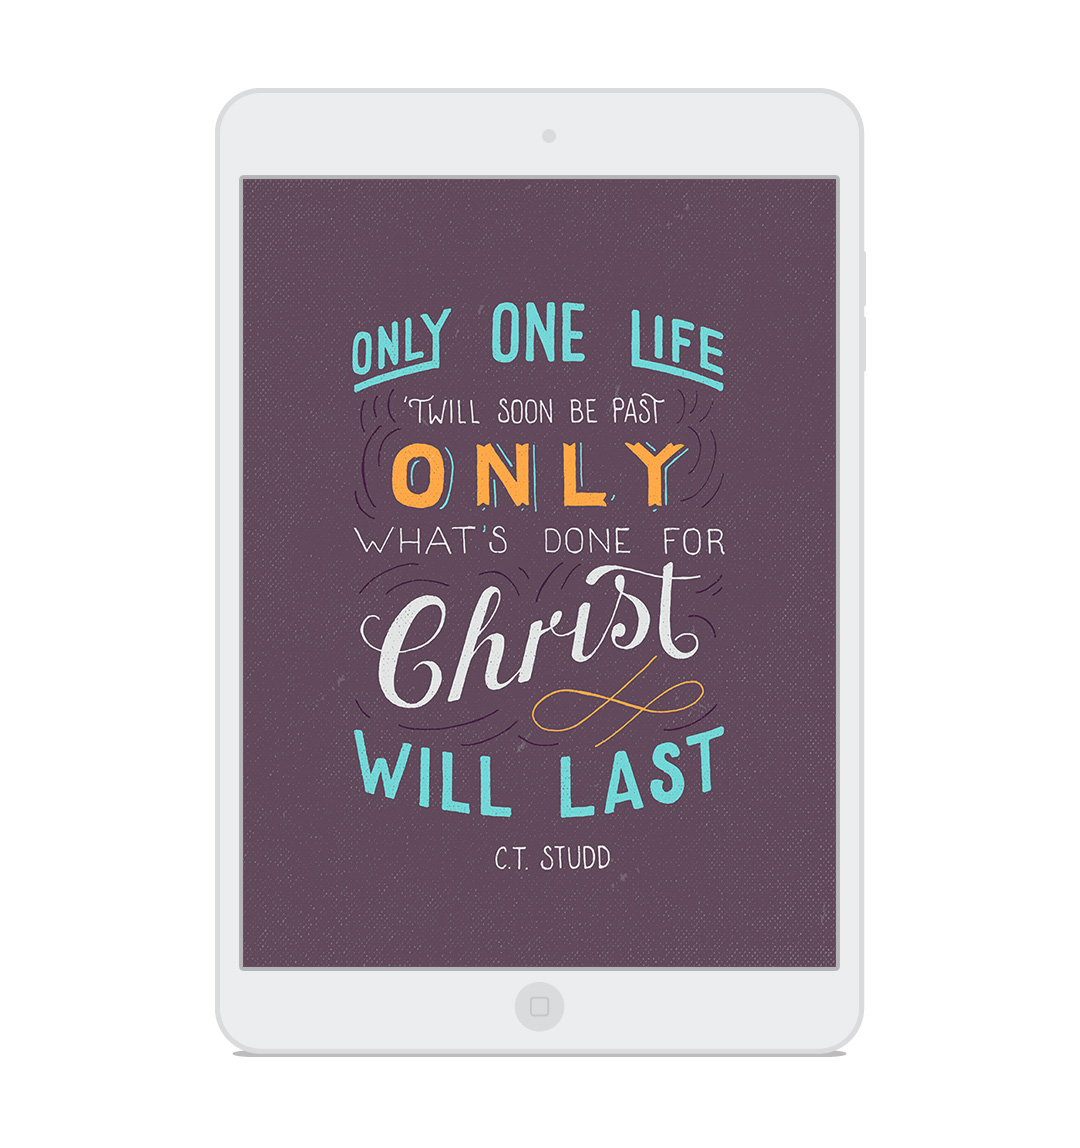 HLCO_Only-one-life_ipad.jpg